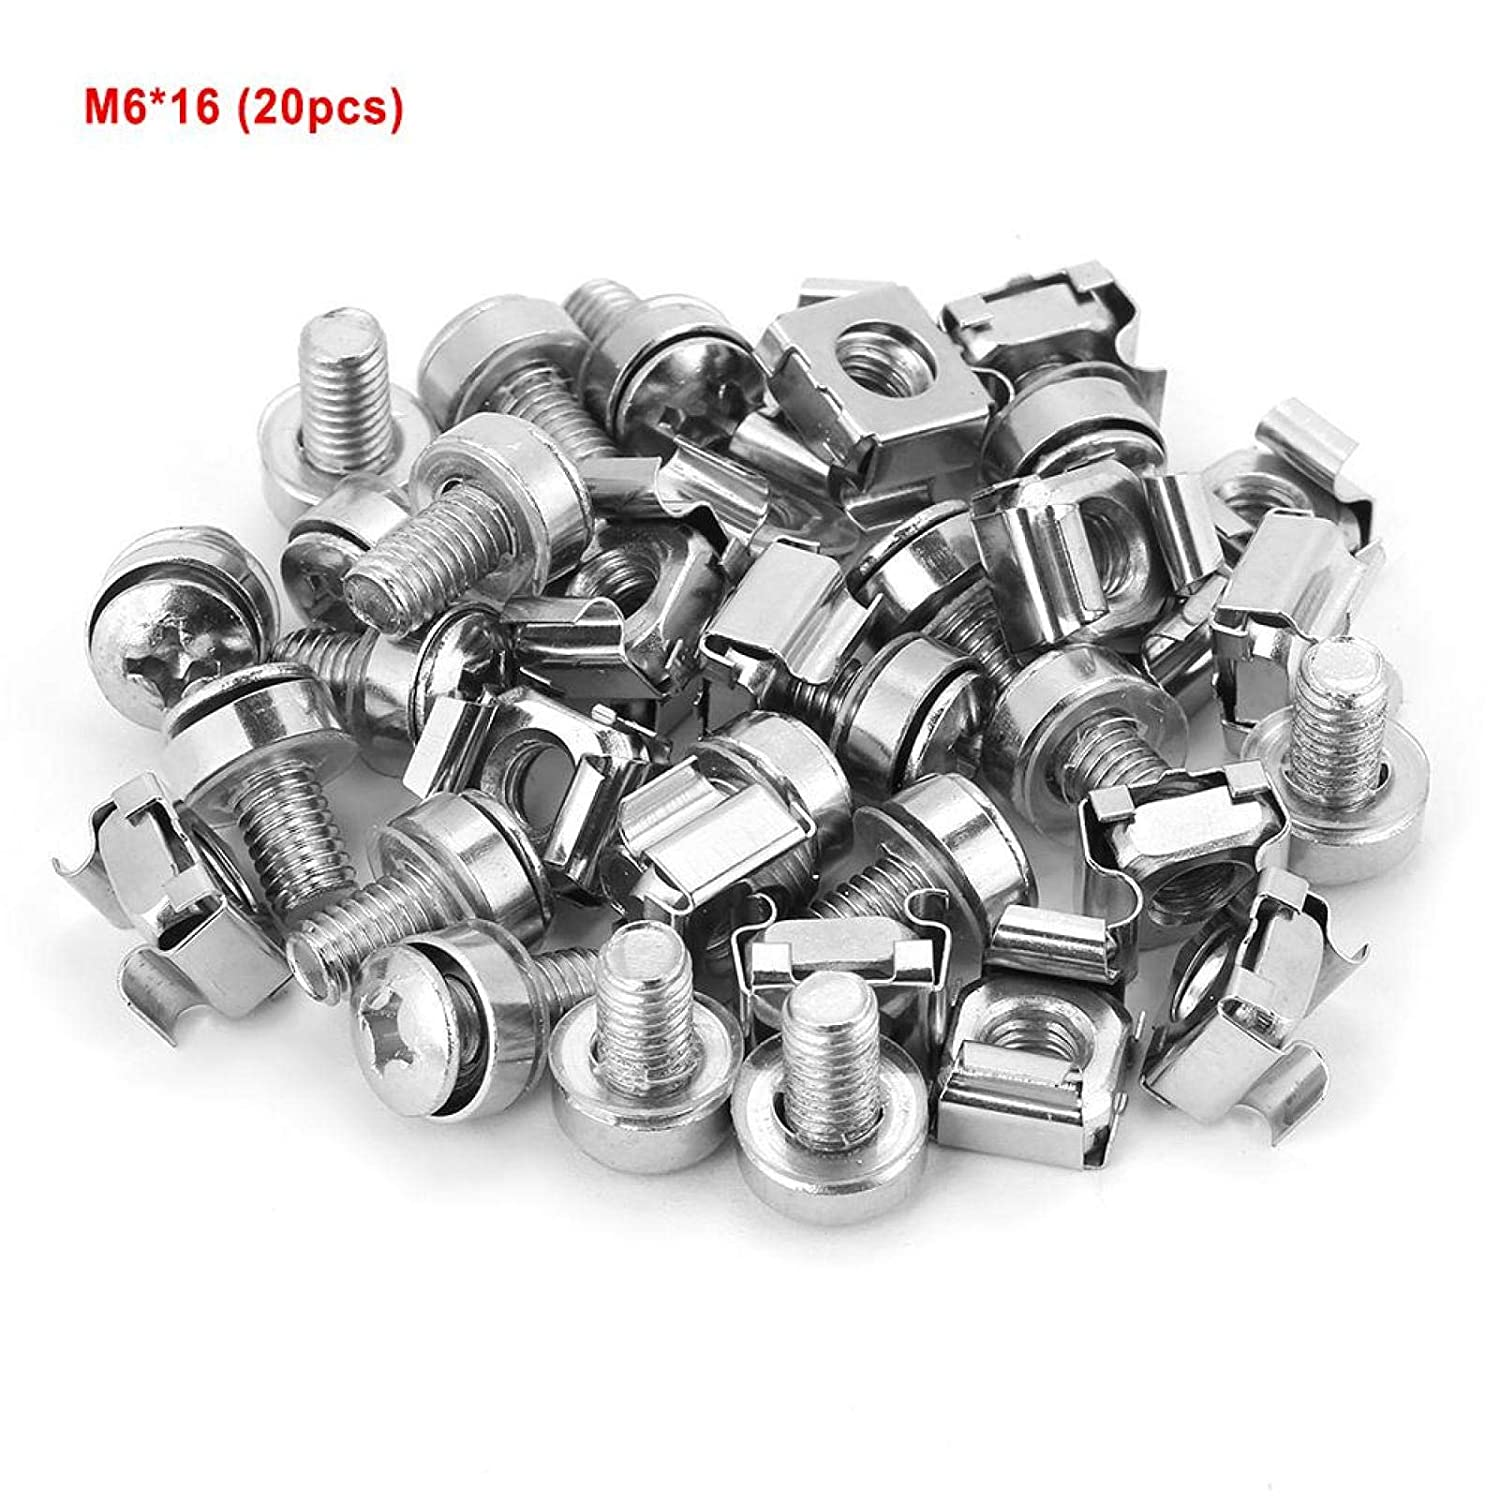 Network Cabinet Screw Nut, 20Pcs M516 M520 M616 M620 (Optional) Screws and Cage Nuts Assortment Kit, Cage Nut Fits for Network Cabinet Rack, Mechanical Mold(M616(20PCS))